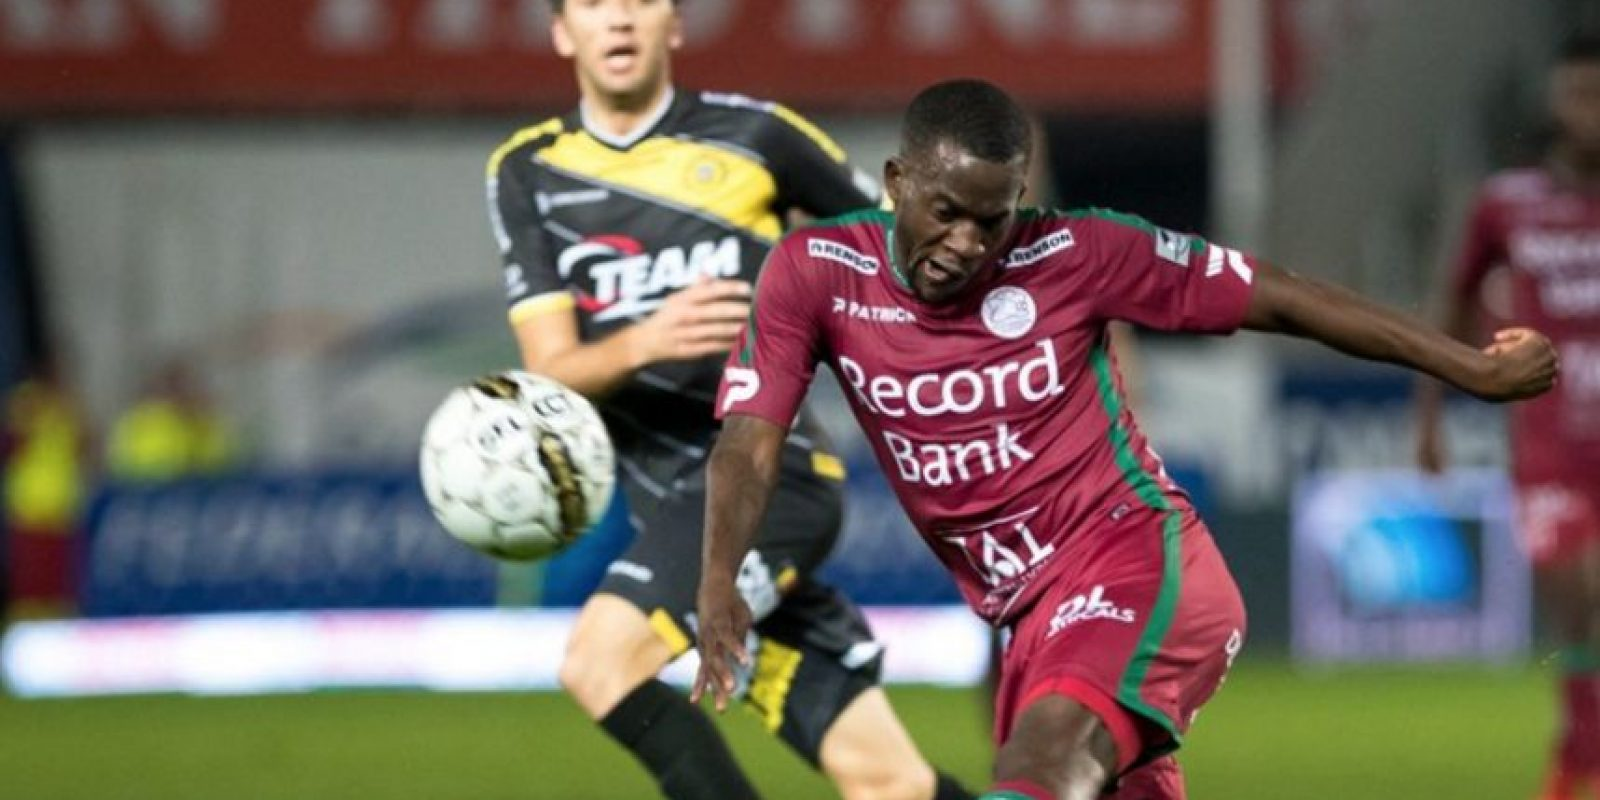 Zulte Waregen – Bélgica Foto: Getty Images